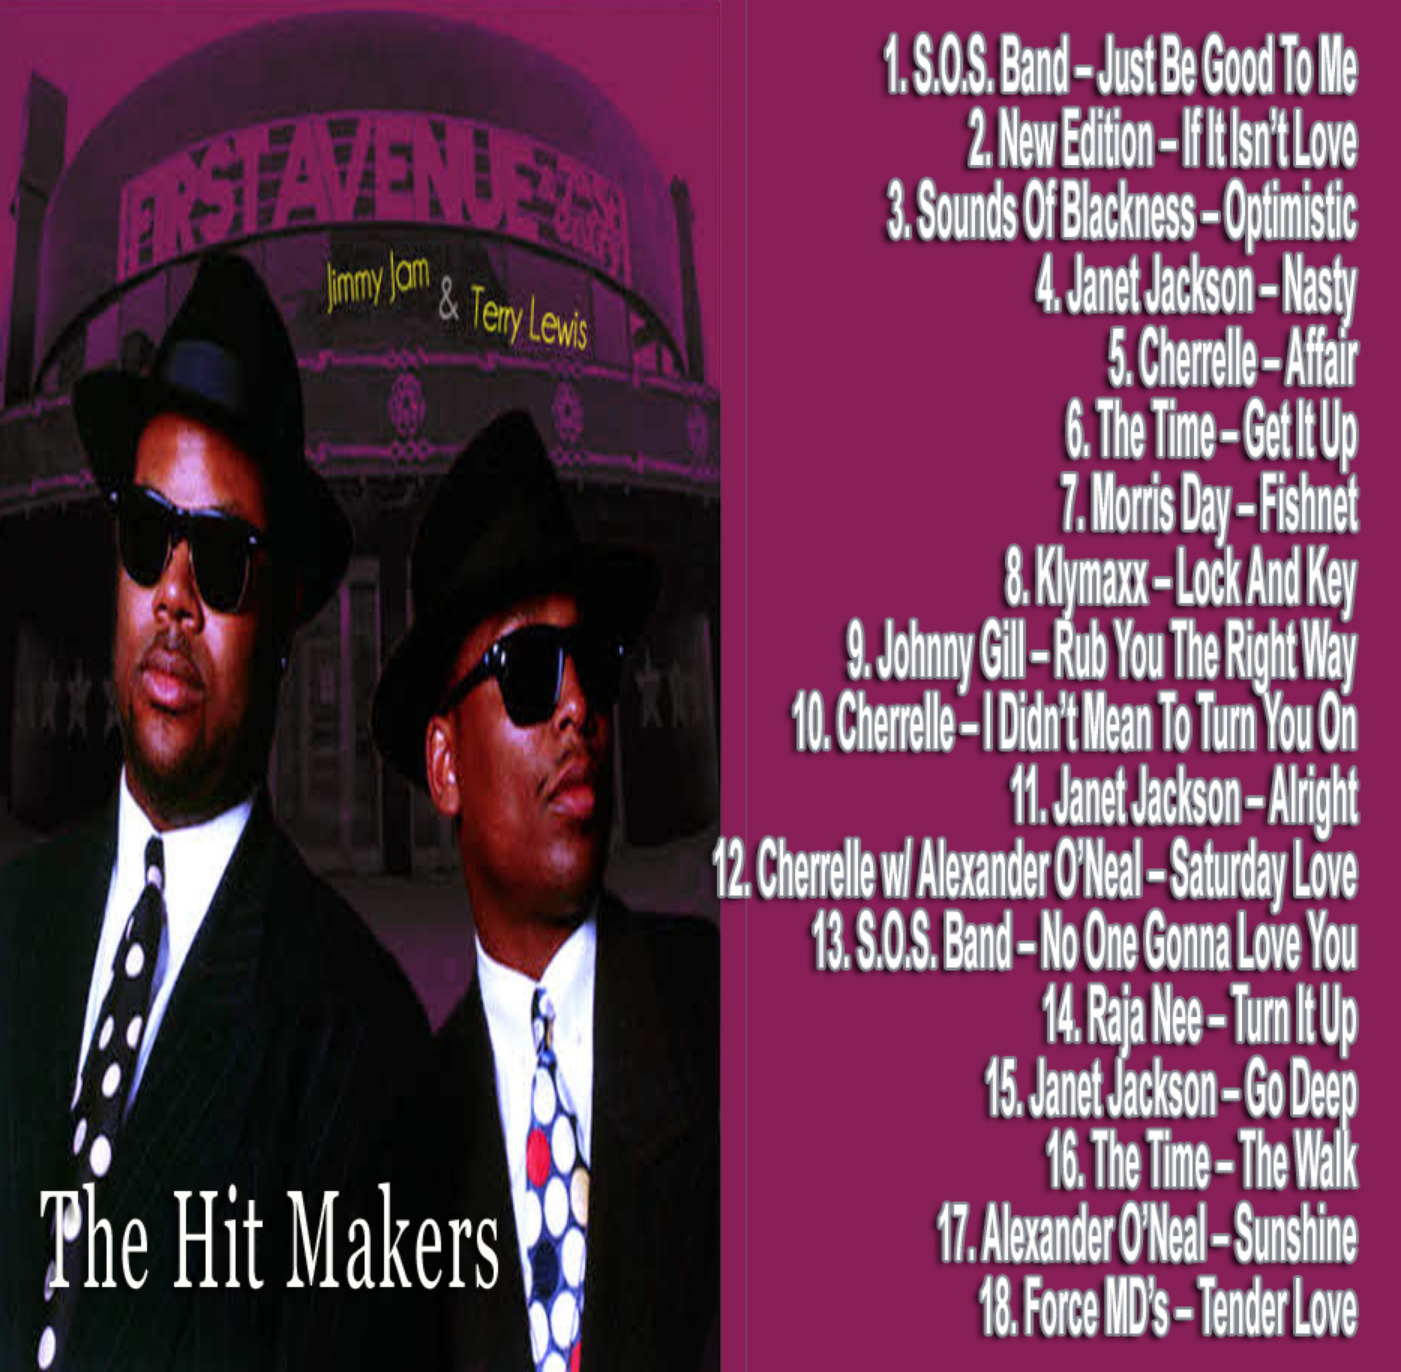 Jimmy Jam & Terry Lewis (The Producers) Mix MP3